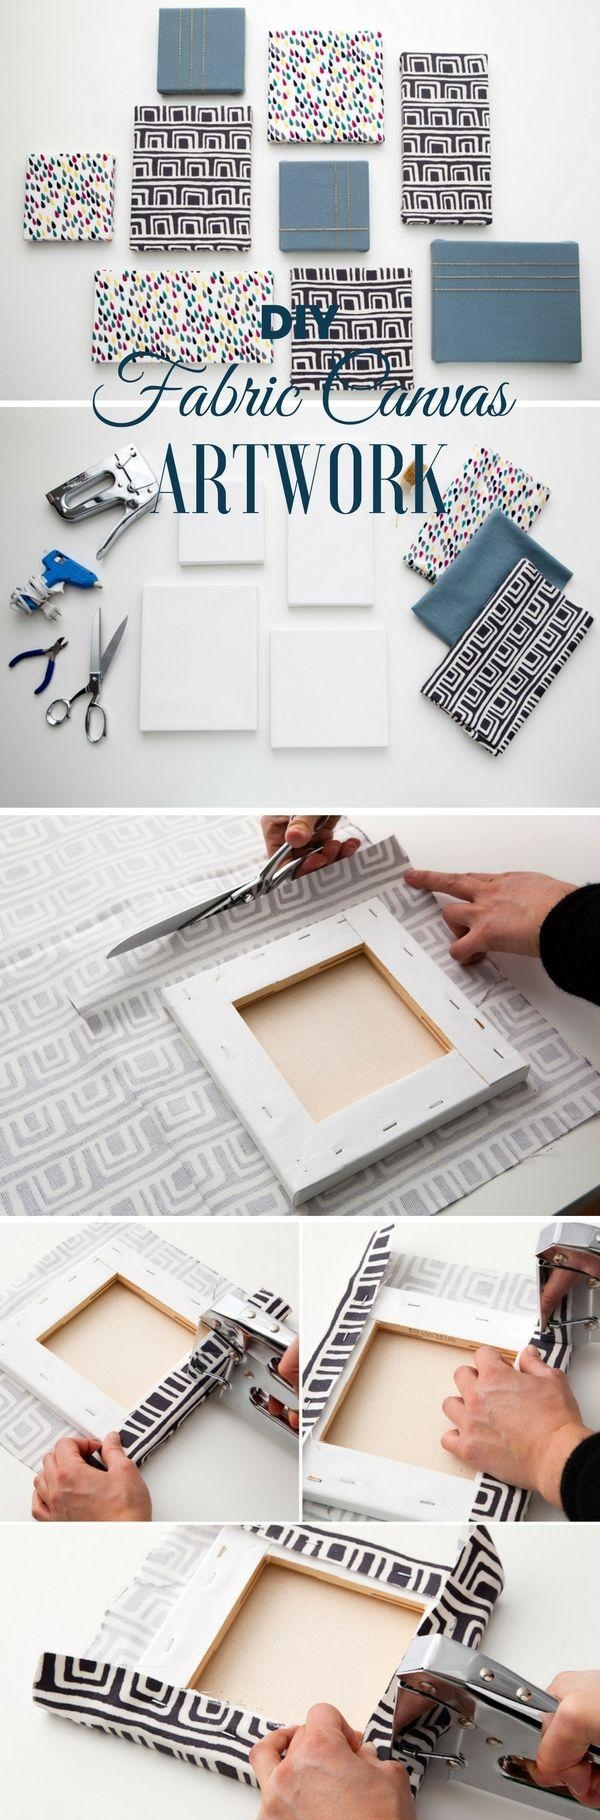 Best 25+ Diy Canvas Ideas On Pinterest | Diy Canvas Art, Puffy For Diy Pinterest Canvas Art (View 10 of 20)